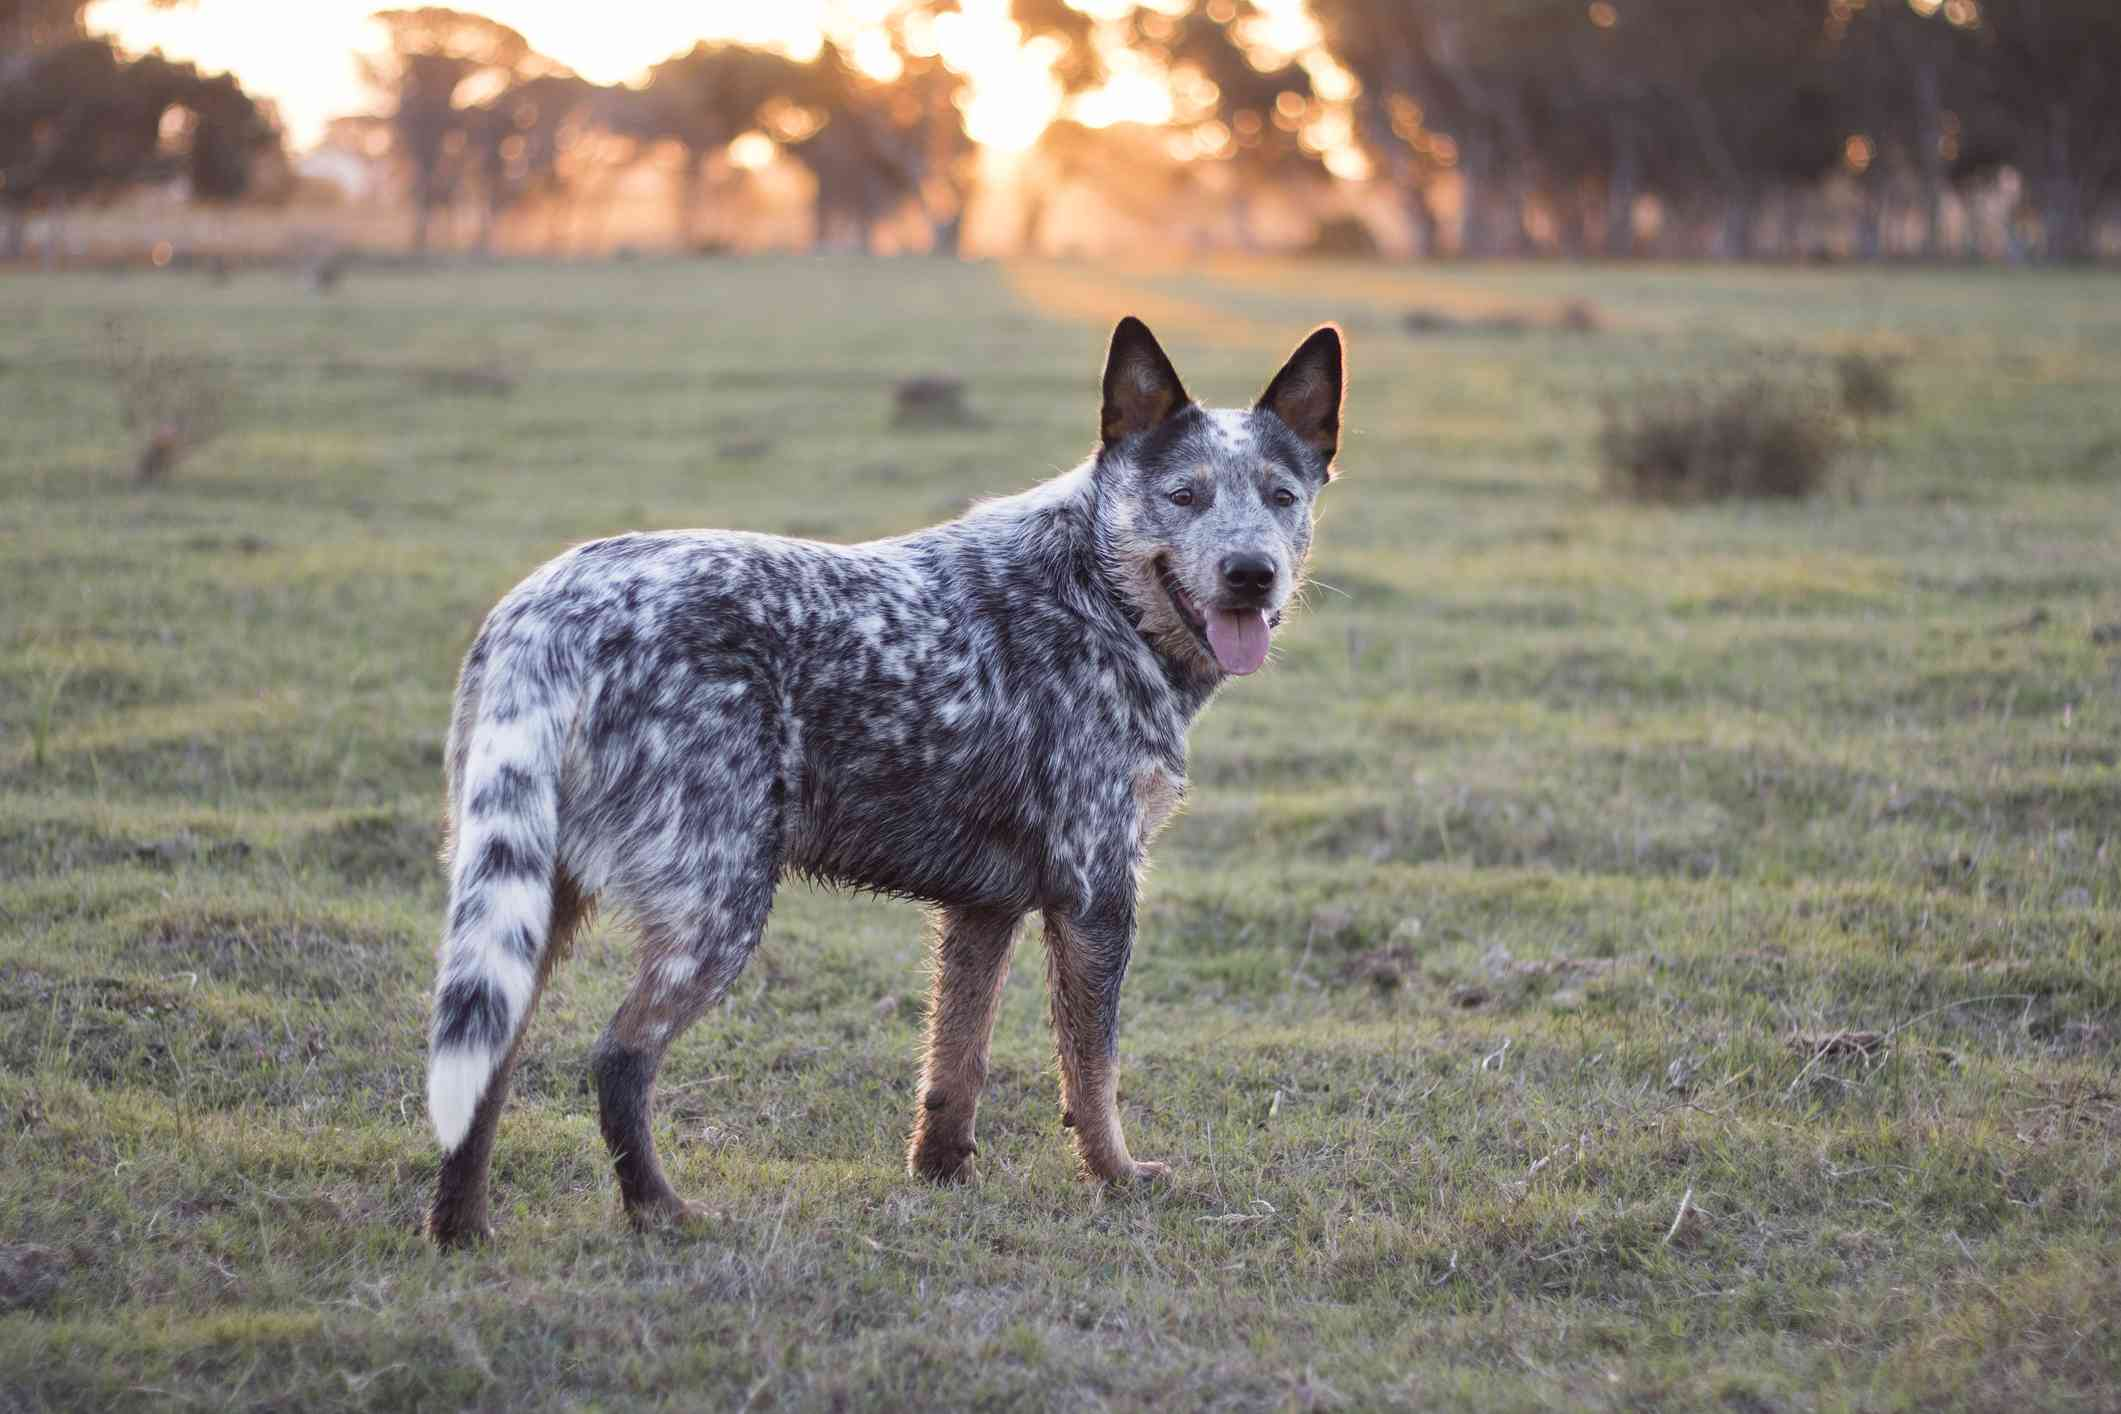 australian cattle dog standing in field at sunset looking back at camera